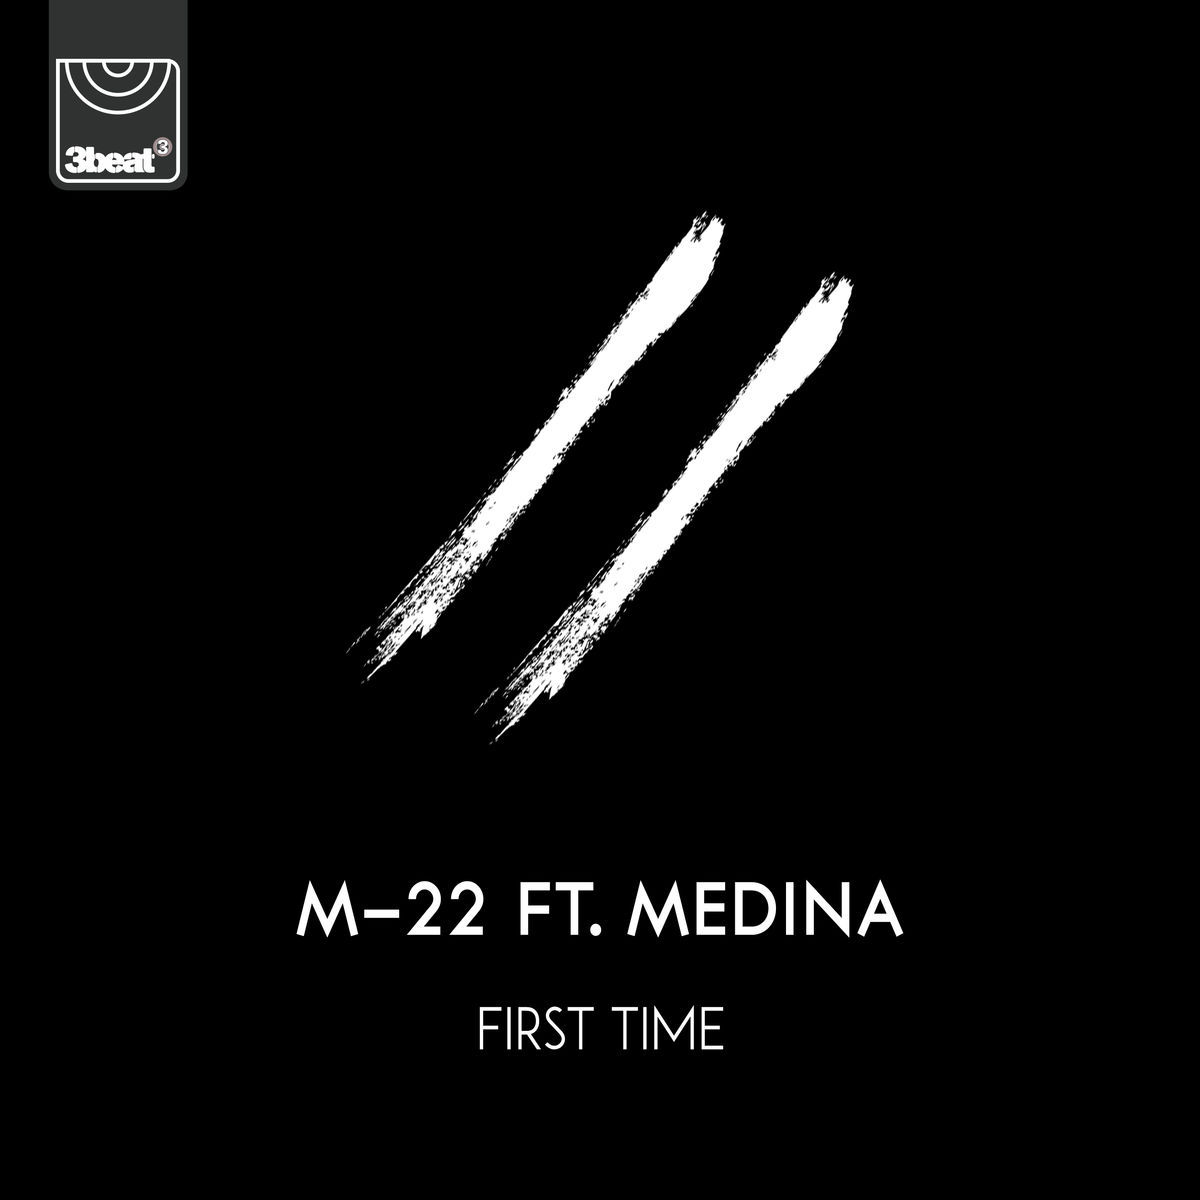 M-22 Ft. Medina - First Time (Disco Fries Extended)